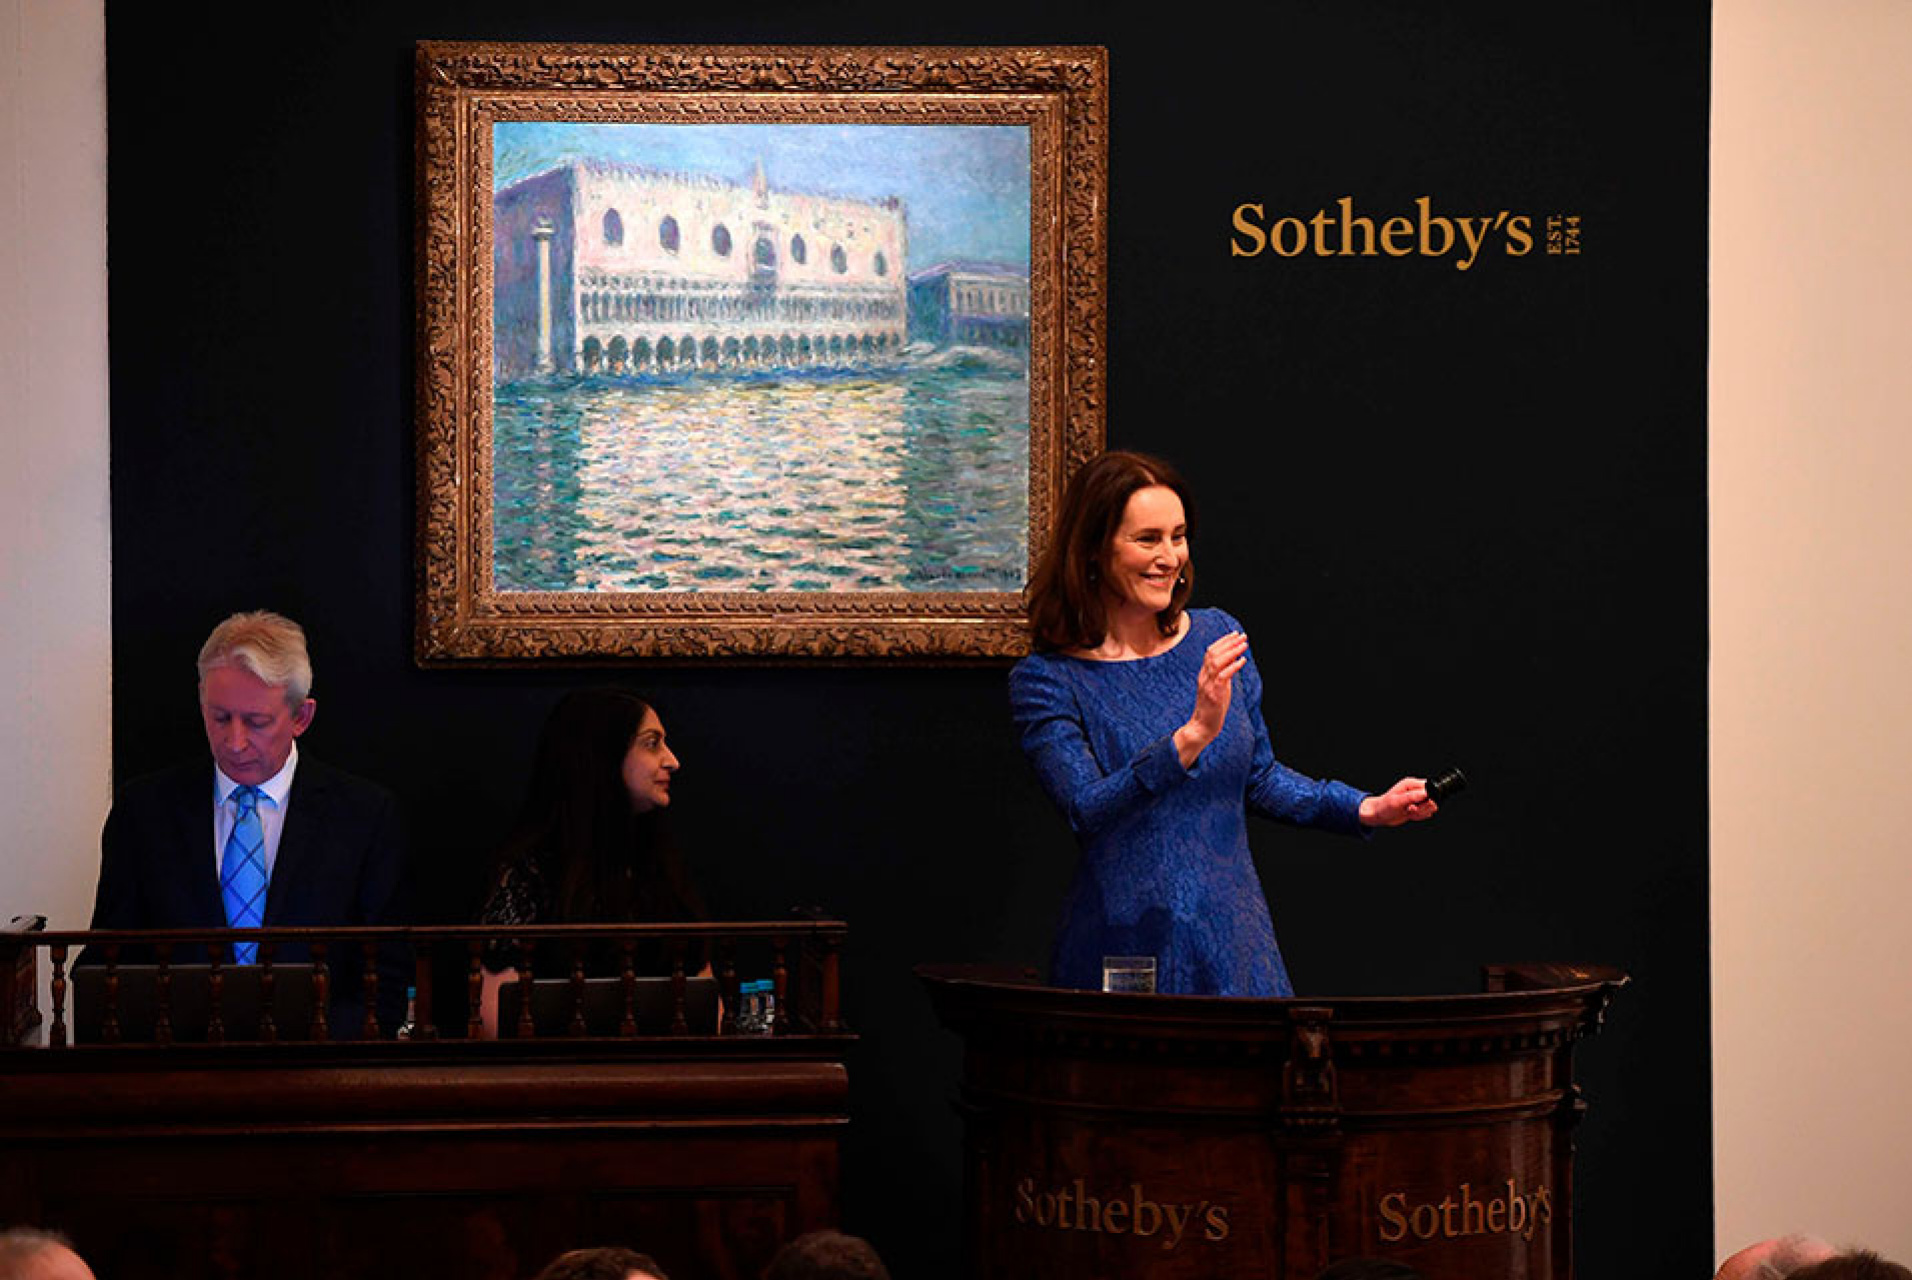 sothebys christies auction house scandal - 956×640